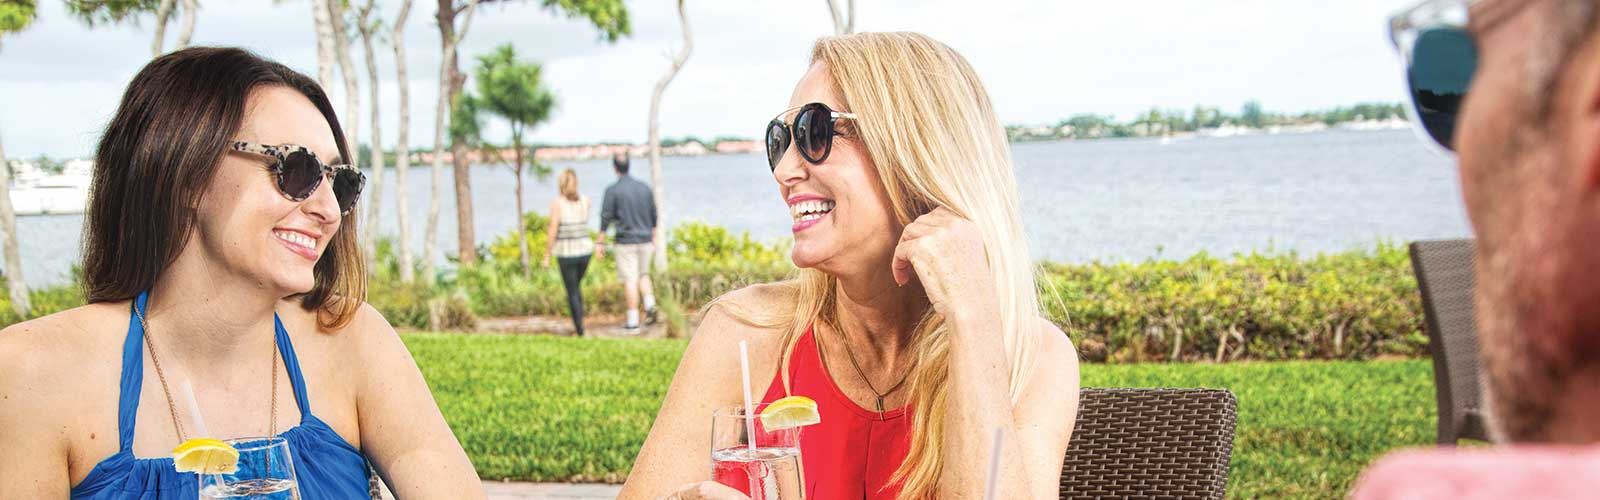 SEE AND BEEN SEEN: Add These Fun Treasure Coast Events to Your Weekend Plans